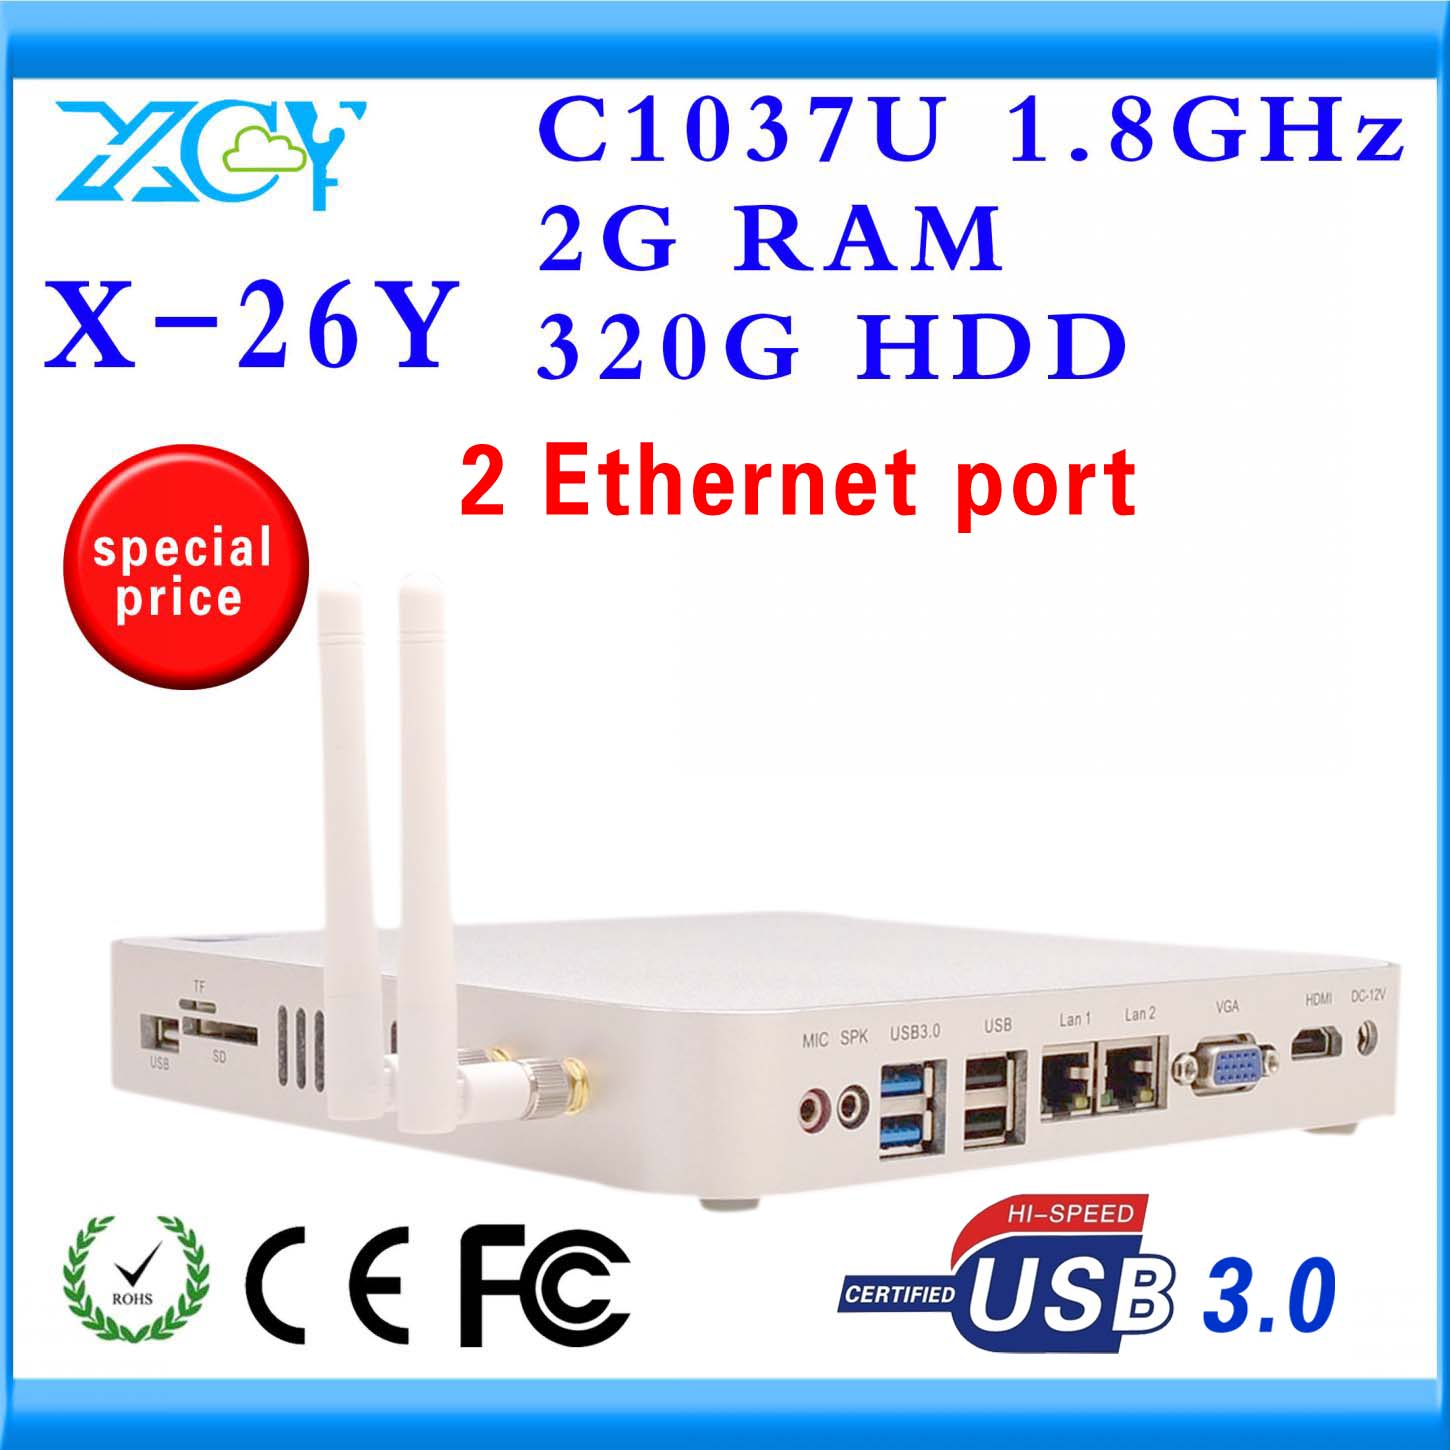 New arrival!! promotional price thin client linux hdmi X-26y dual lan 2gb ram 320gb hhd support computer input output devices(China (Mainland))